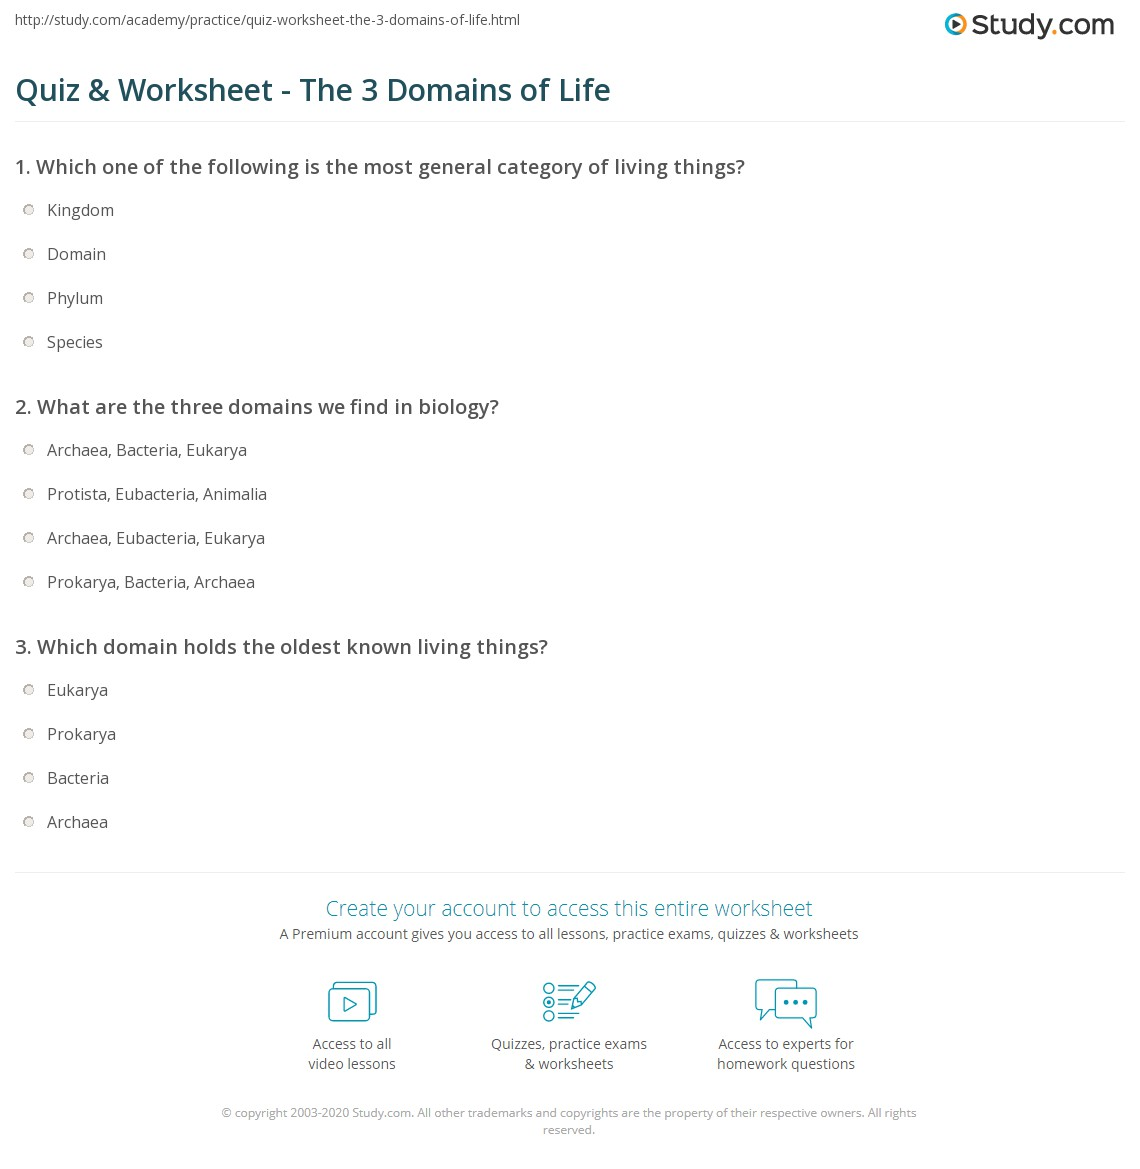 Quiz & Worksheet - The 3 Domains of Life | Study.com